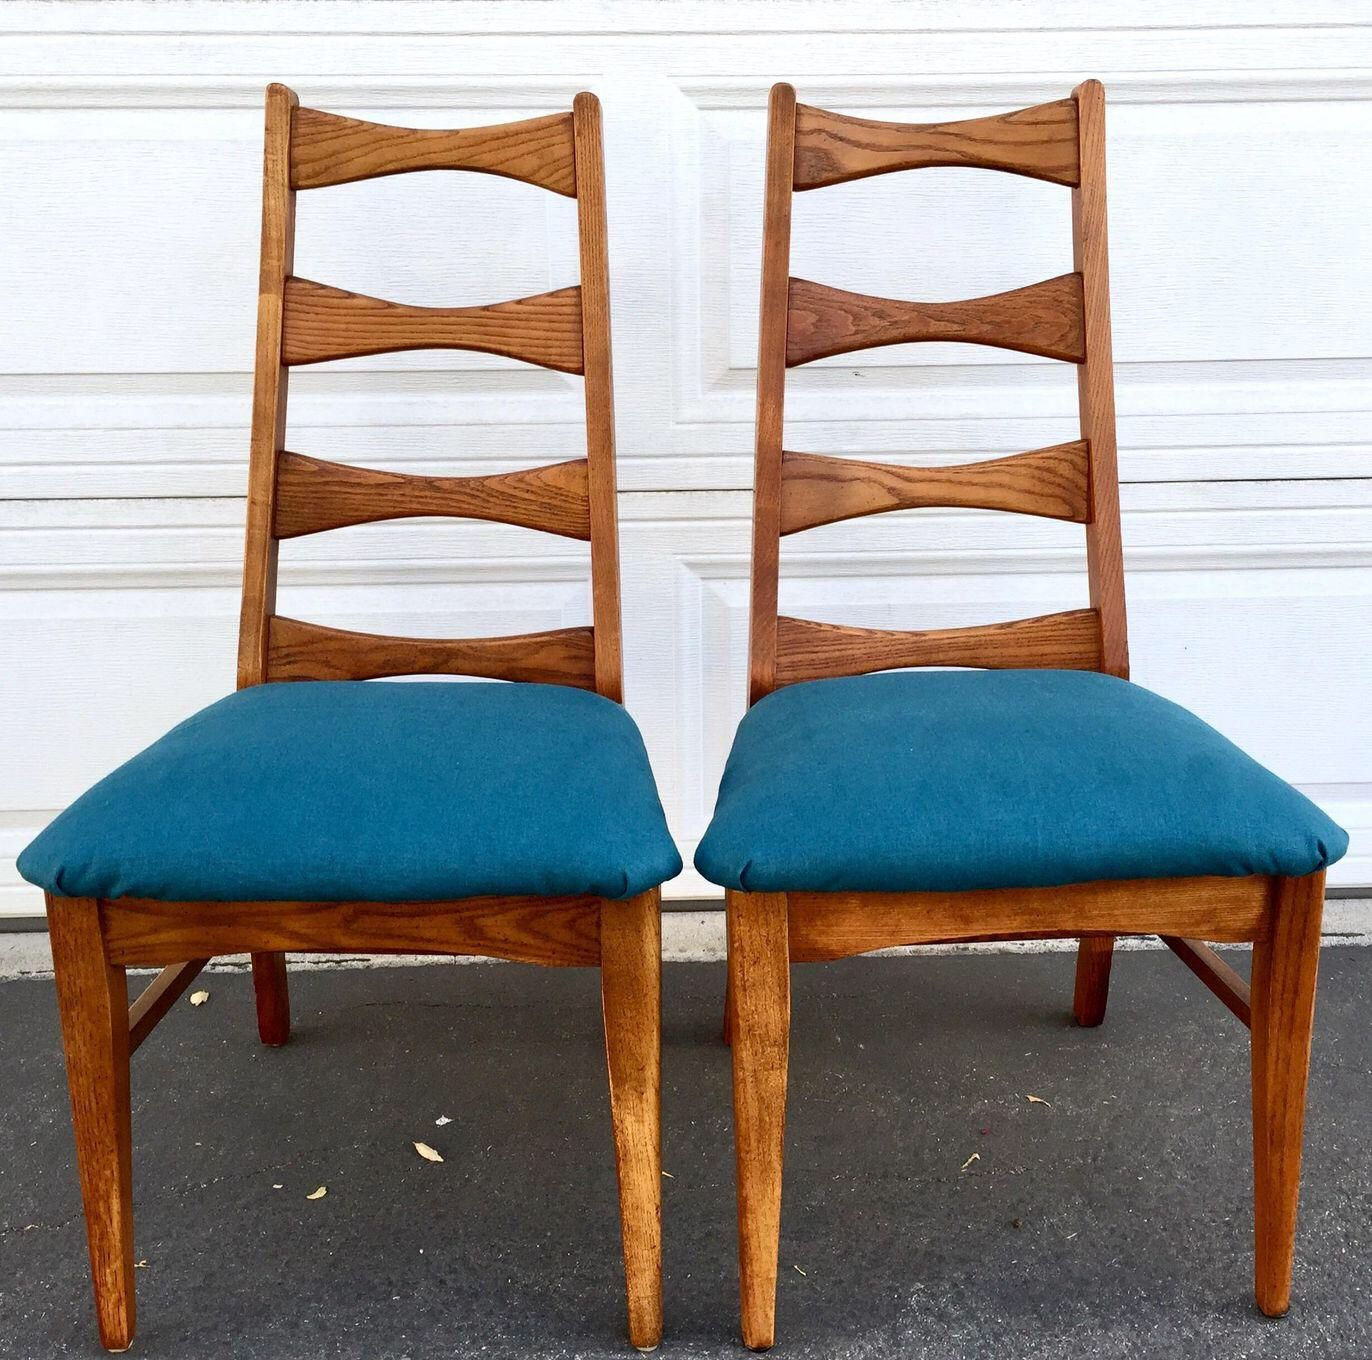 Mid Century Ladder Back Chairs Pair On Chairish Com With Images